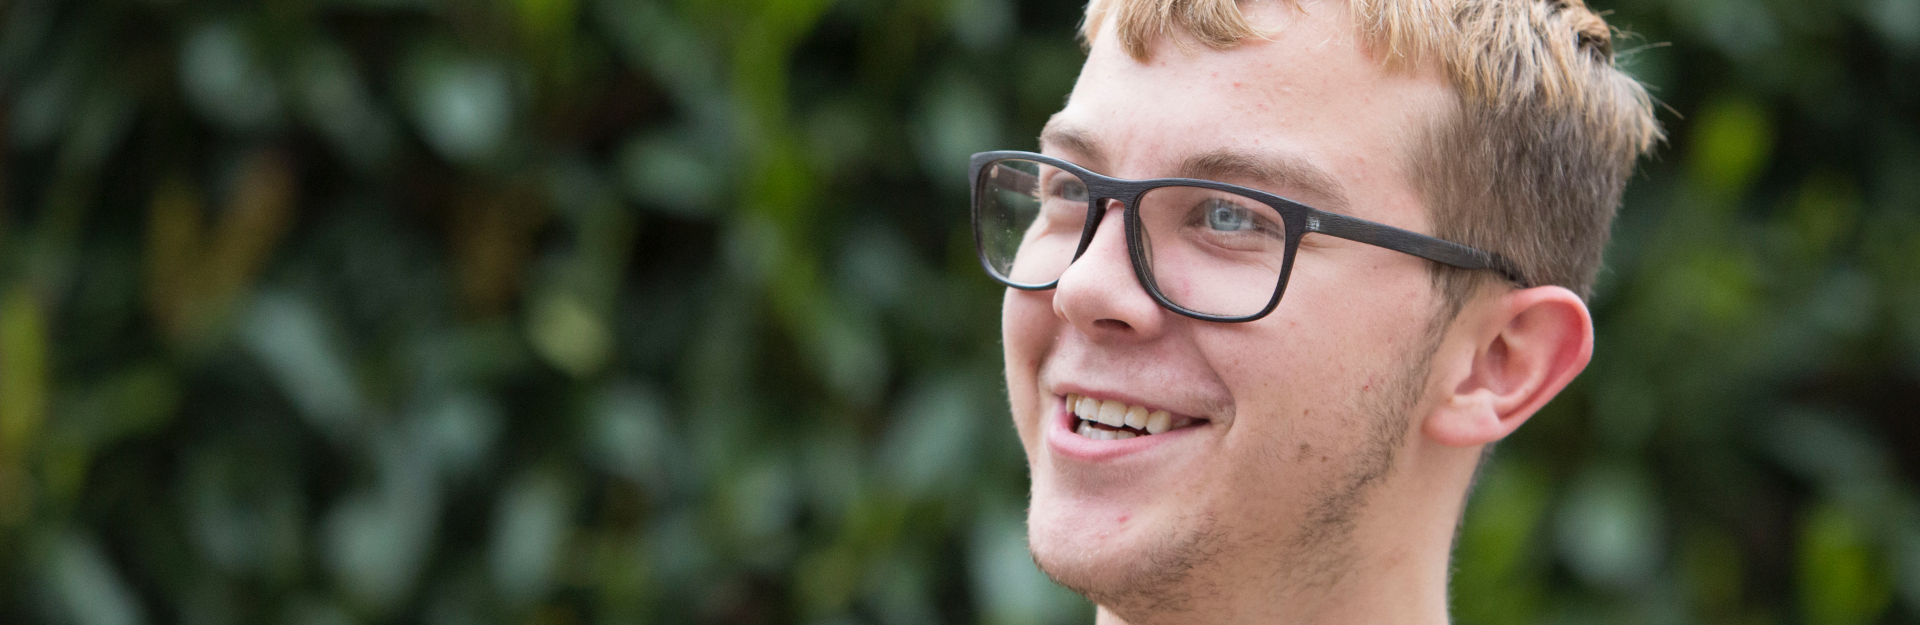 A person in glasses smiling, with a hedge behind them